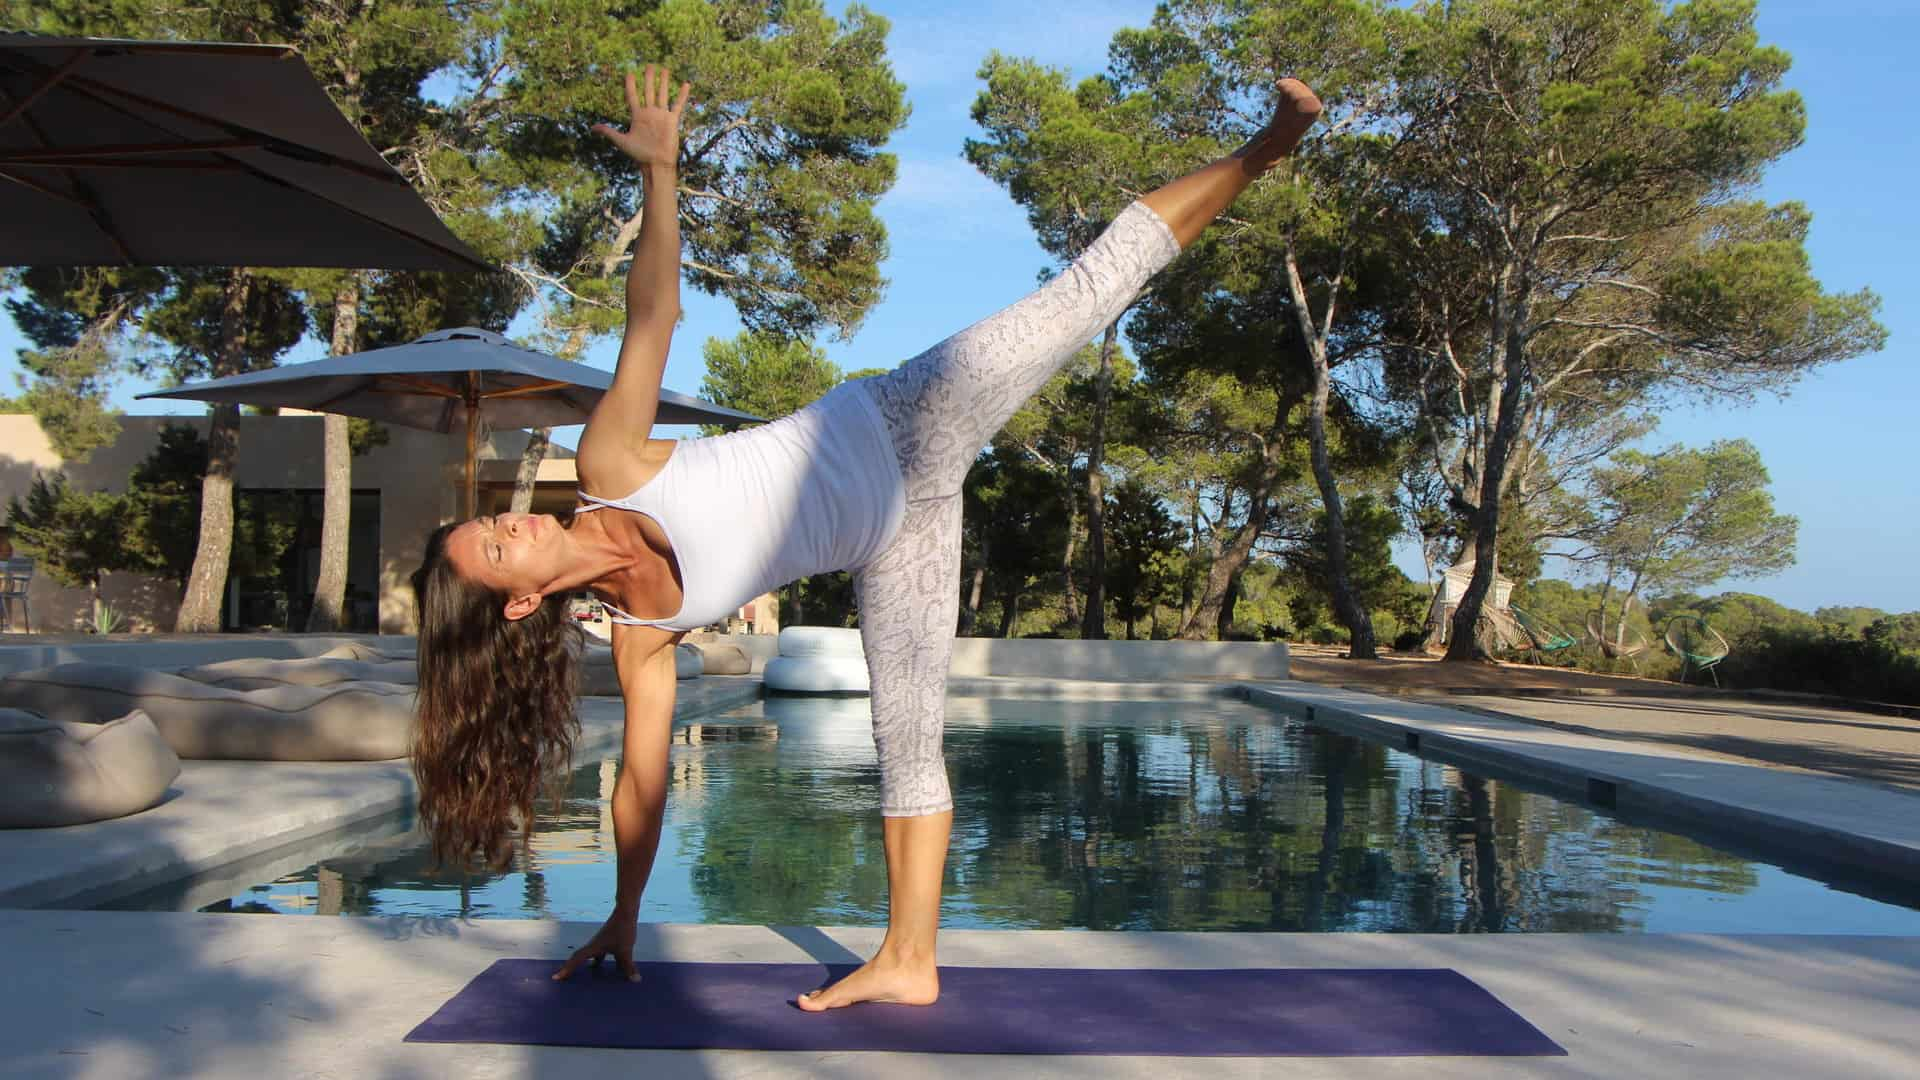 Opale in ardha candrasana or half moon pose at private Yoga lesson in Ibiza